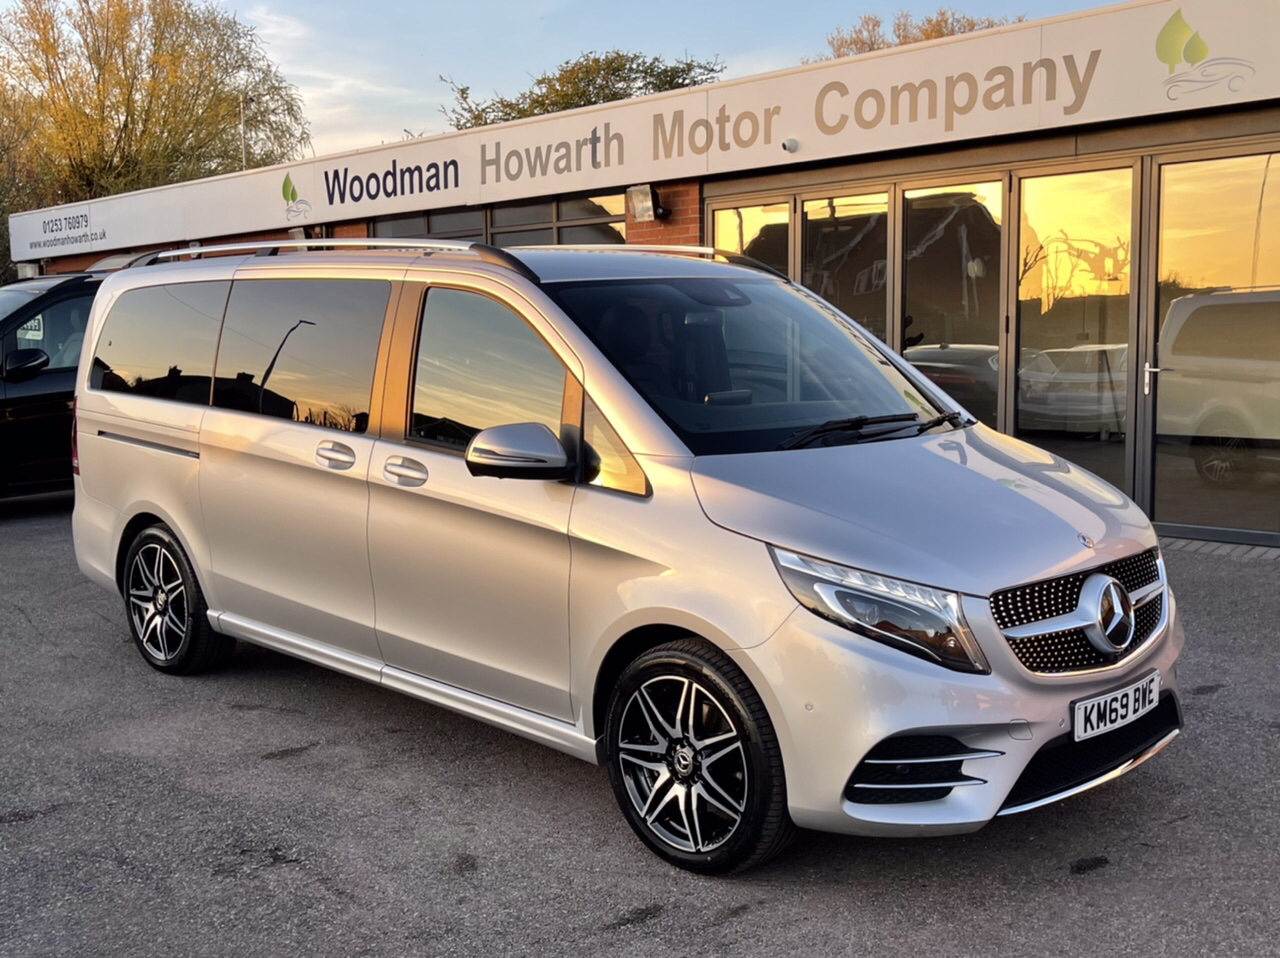 2019 69 MERCEDES BENZ V220 D 163BHP LONG AMG LINE 9G-TRONIC AUTO FACELIFT MODEL - VAT Qualifying - 360 Cameras - Memory Pack - COMAND - Pan Roof +++